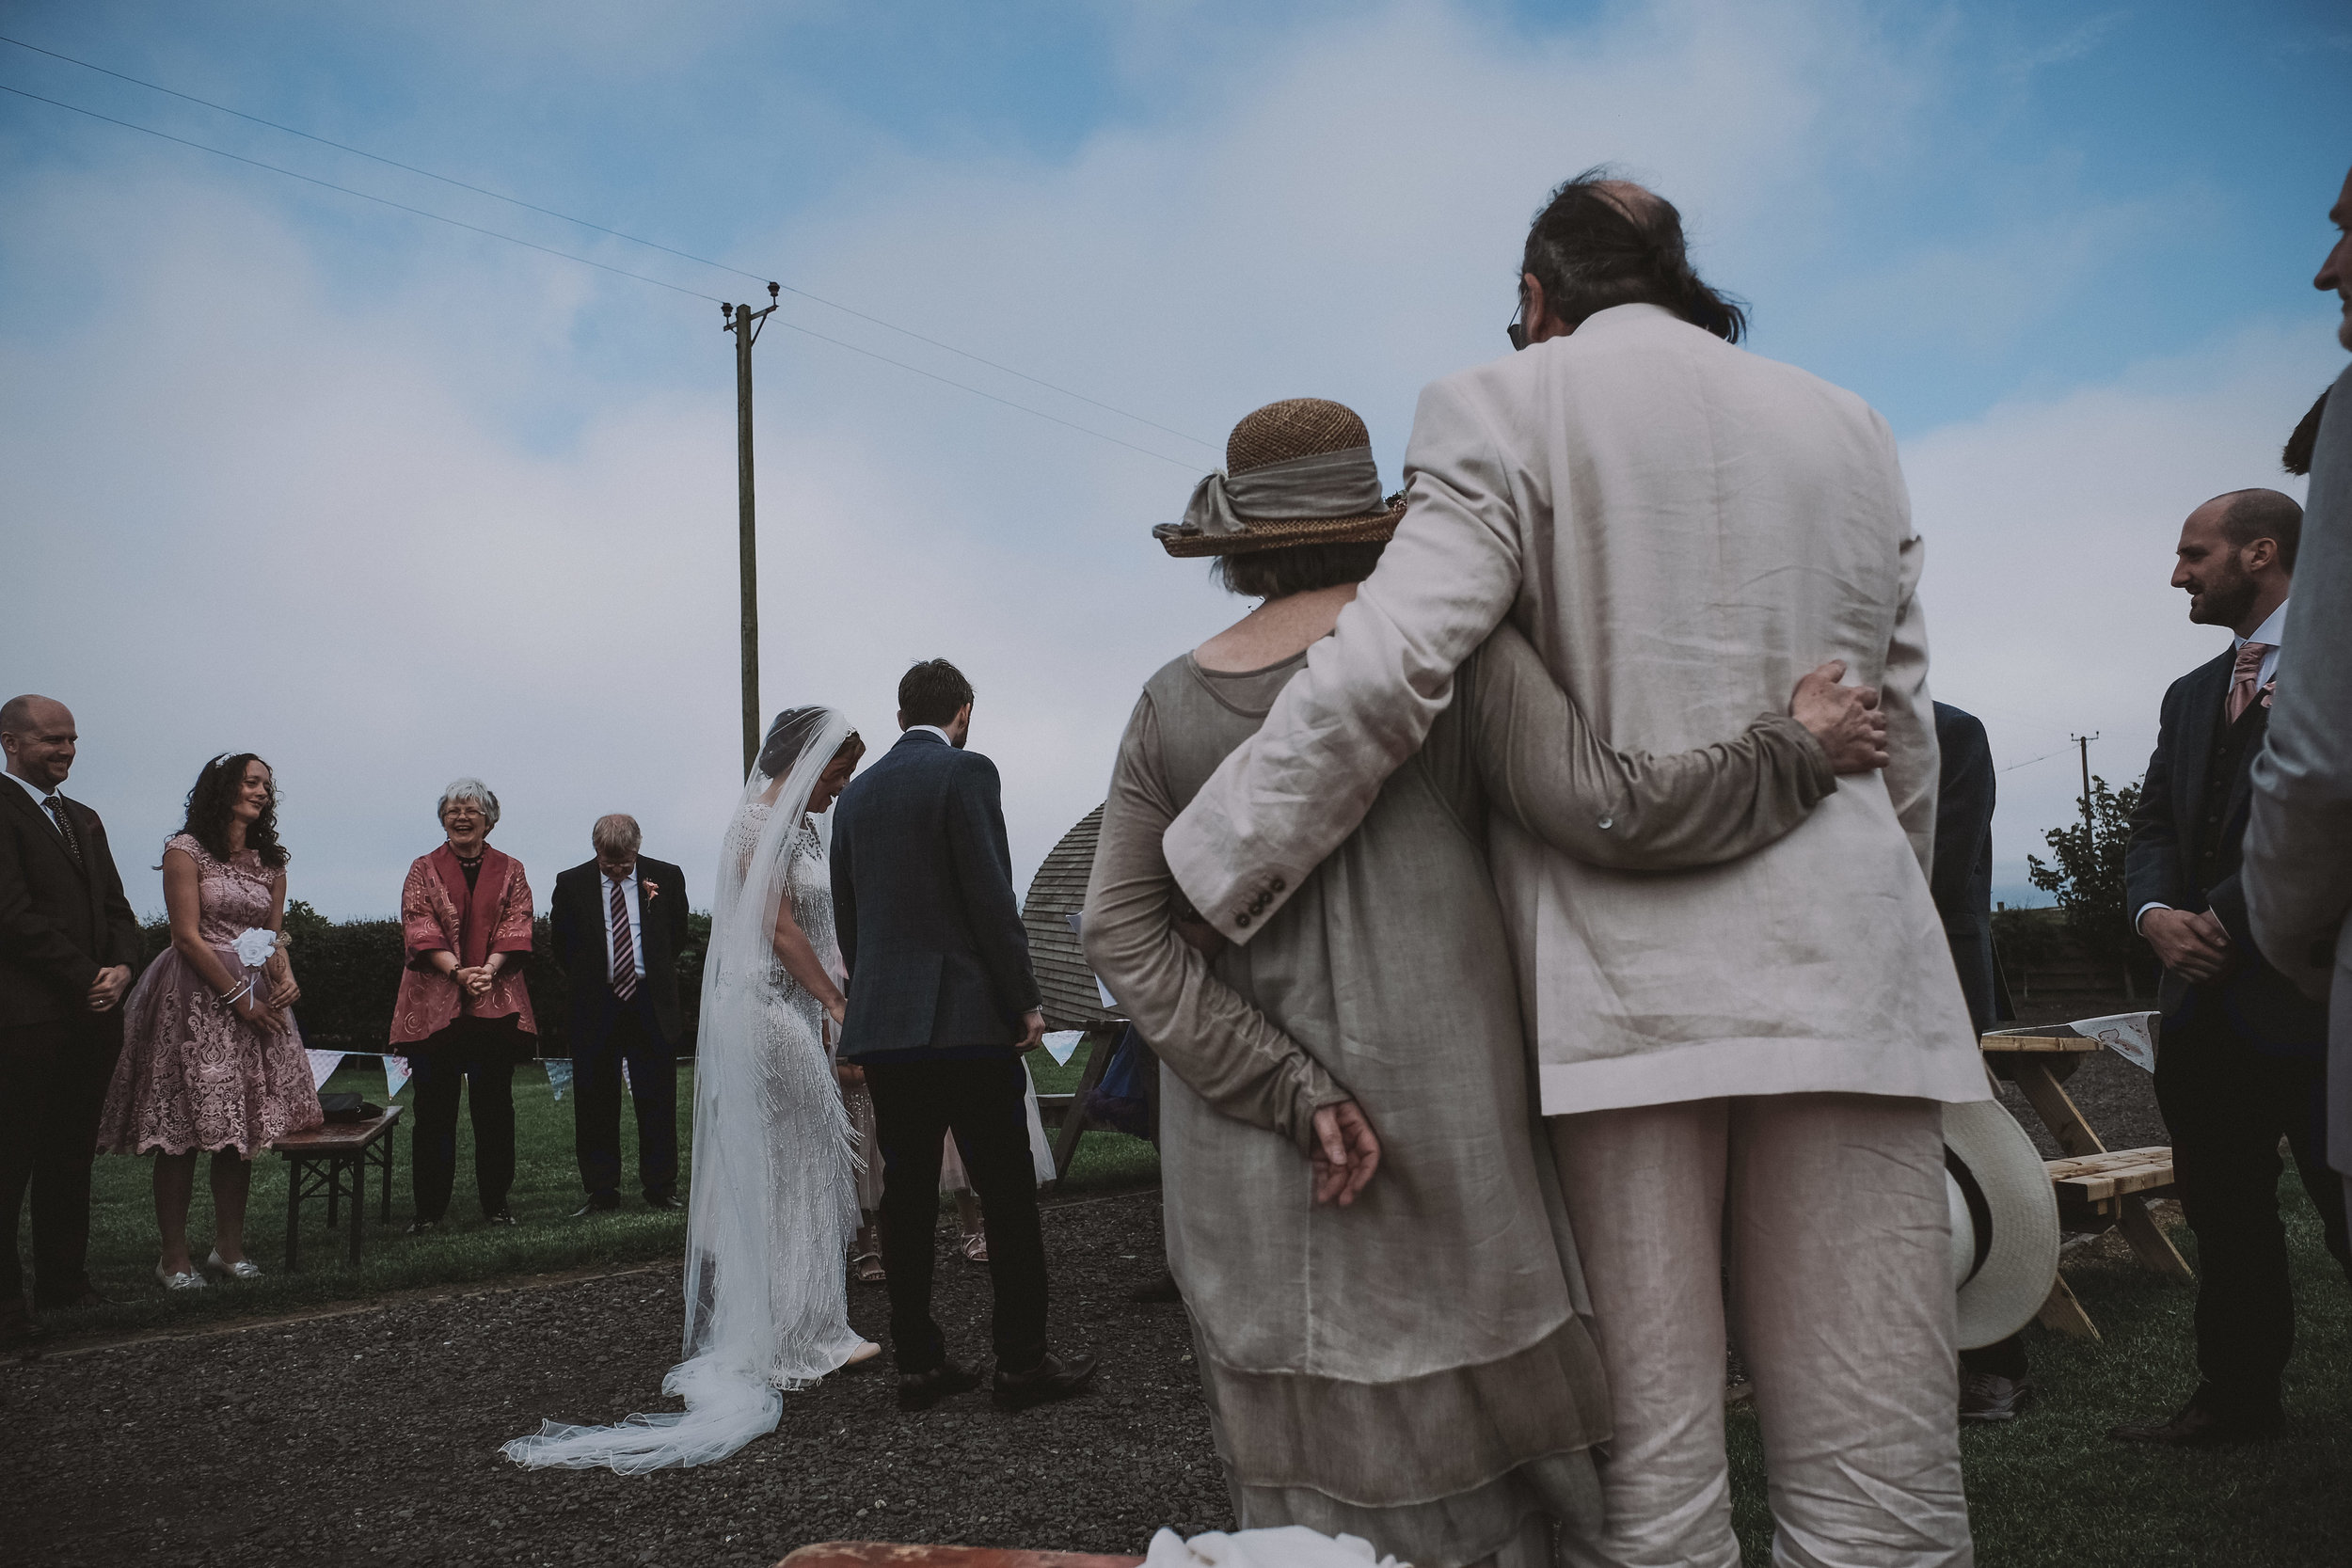 Bride and groom hold hands during the wedding ceremony while their parents cuddle